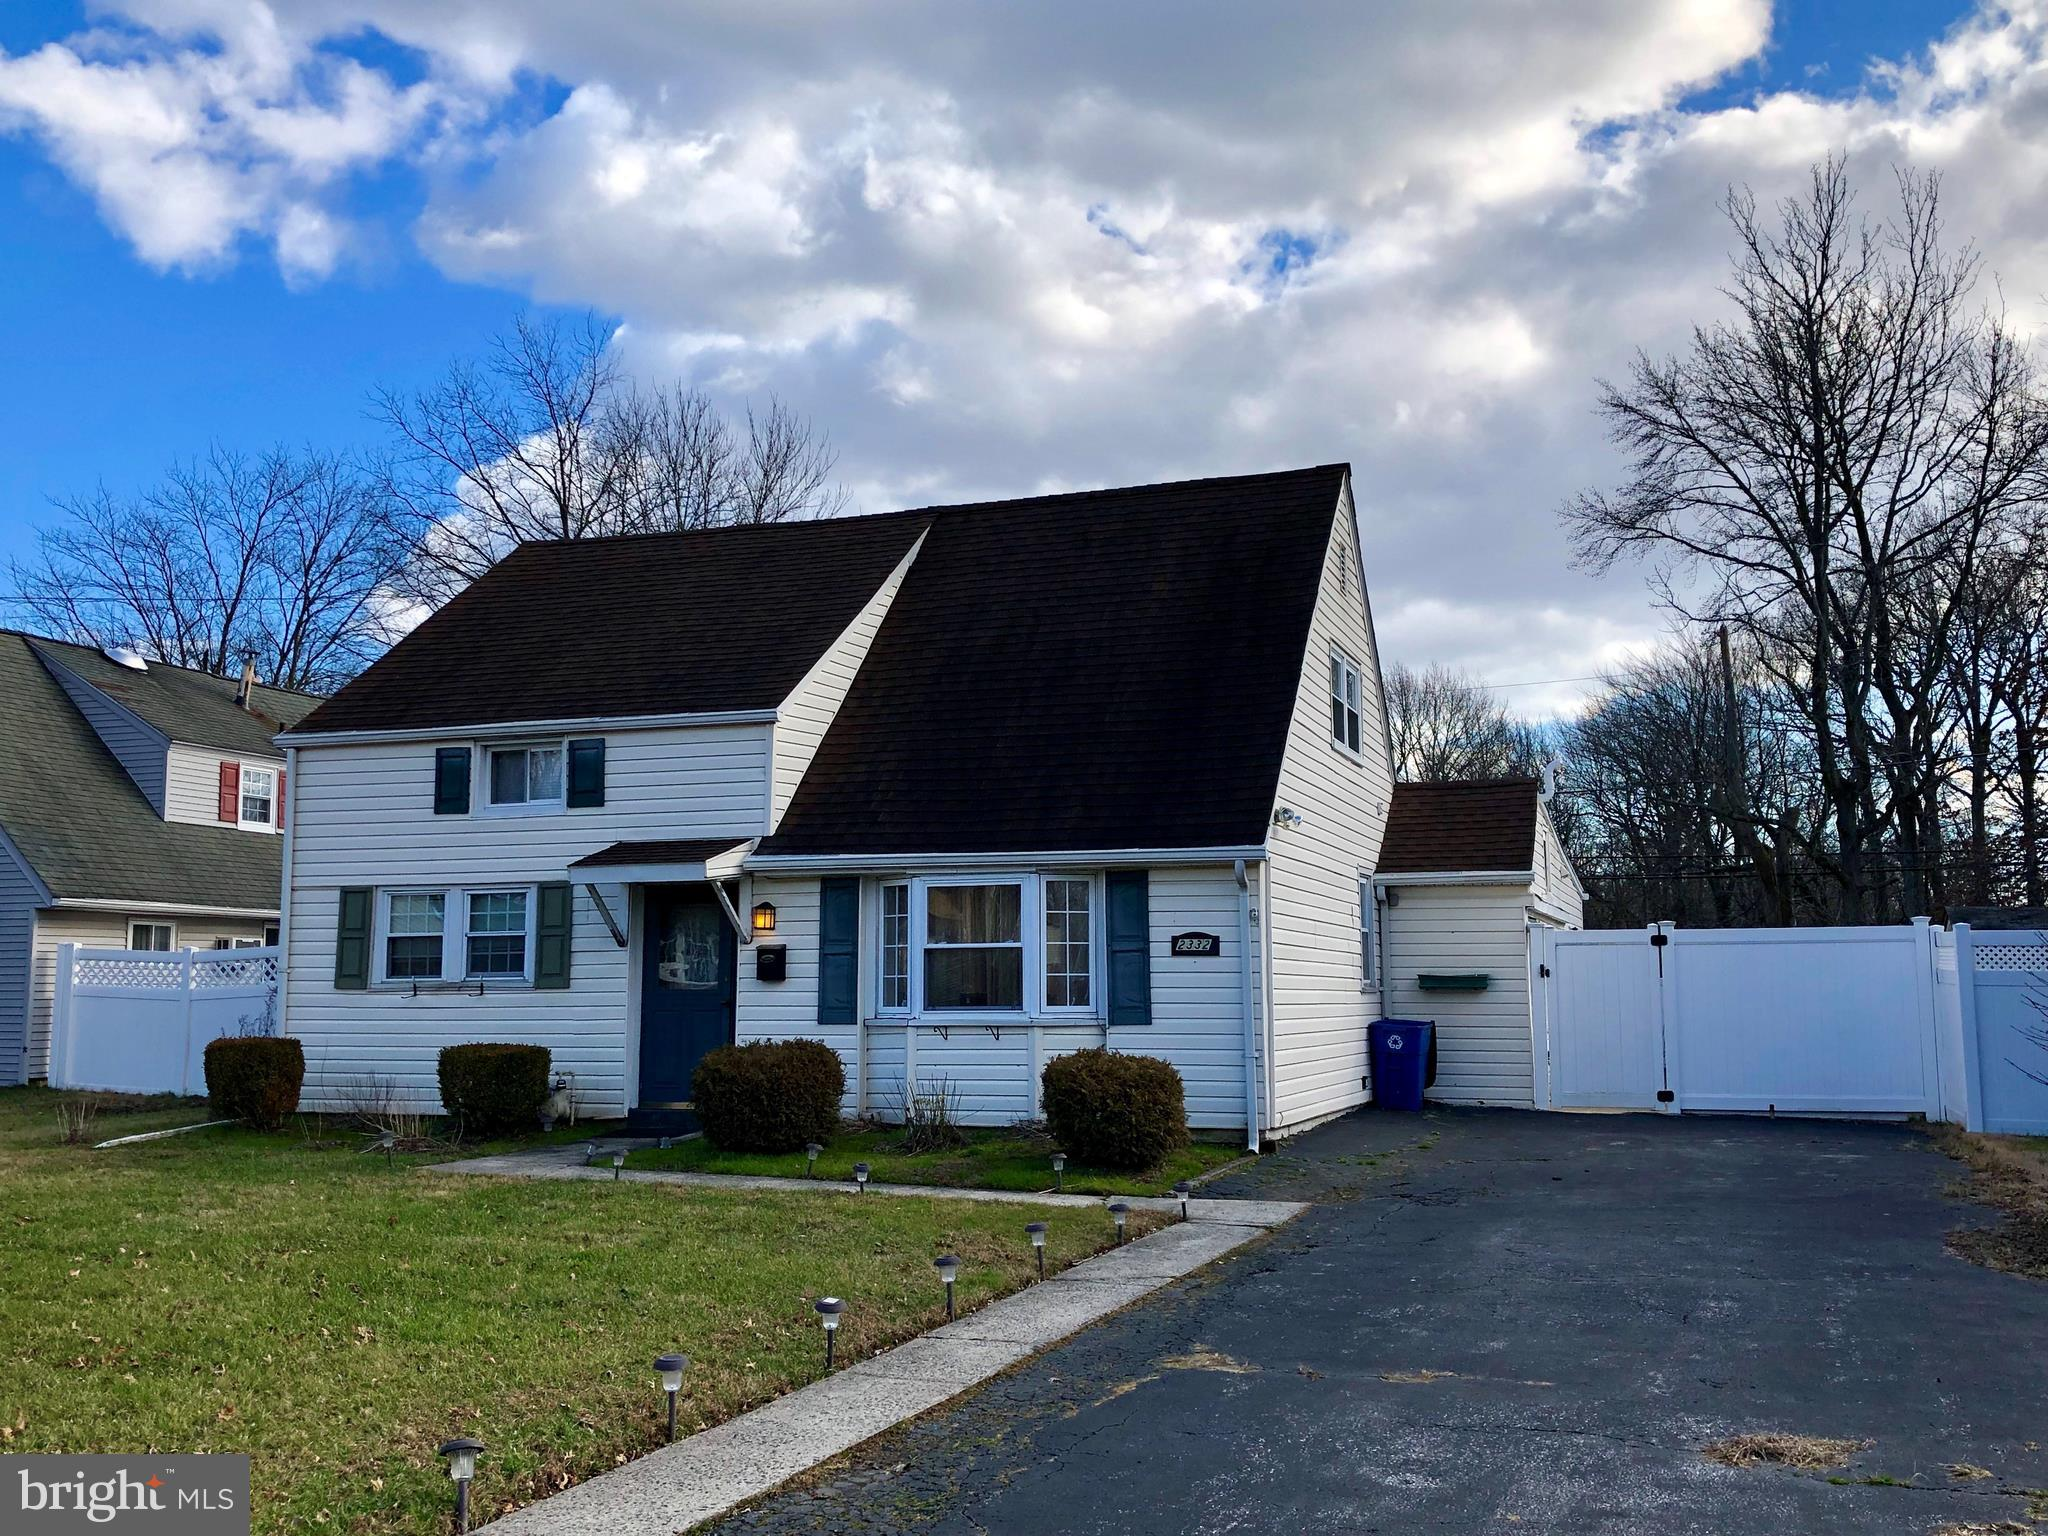 2332 ARMSTRONG AVENUE, HOLMES, PA 19043